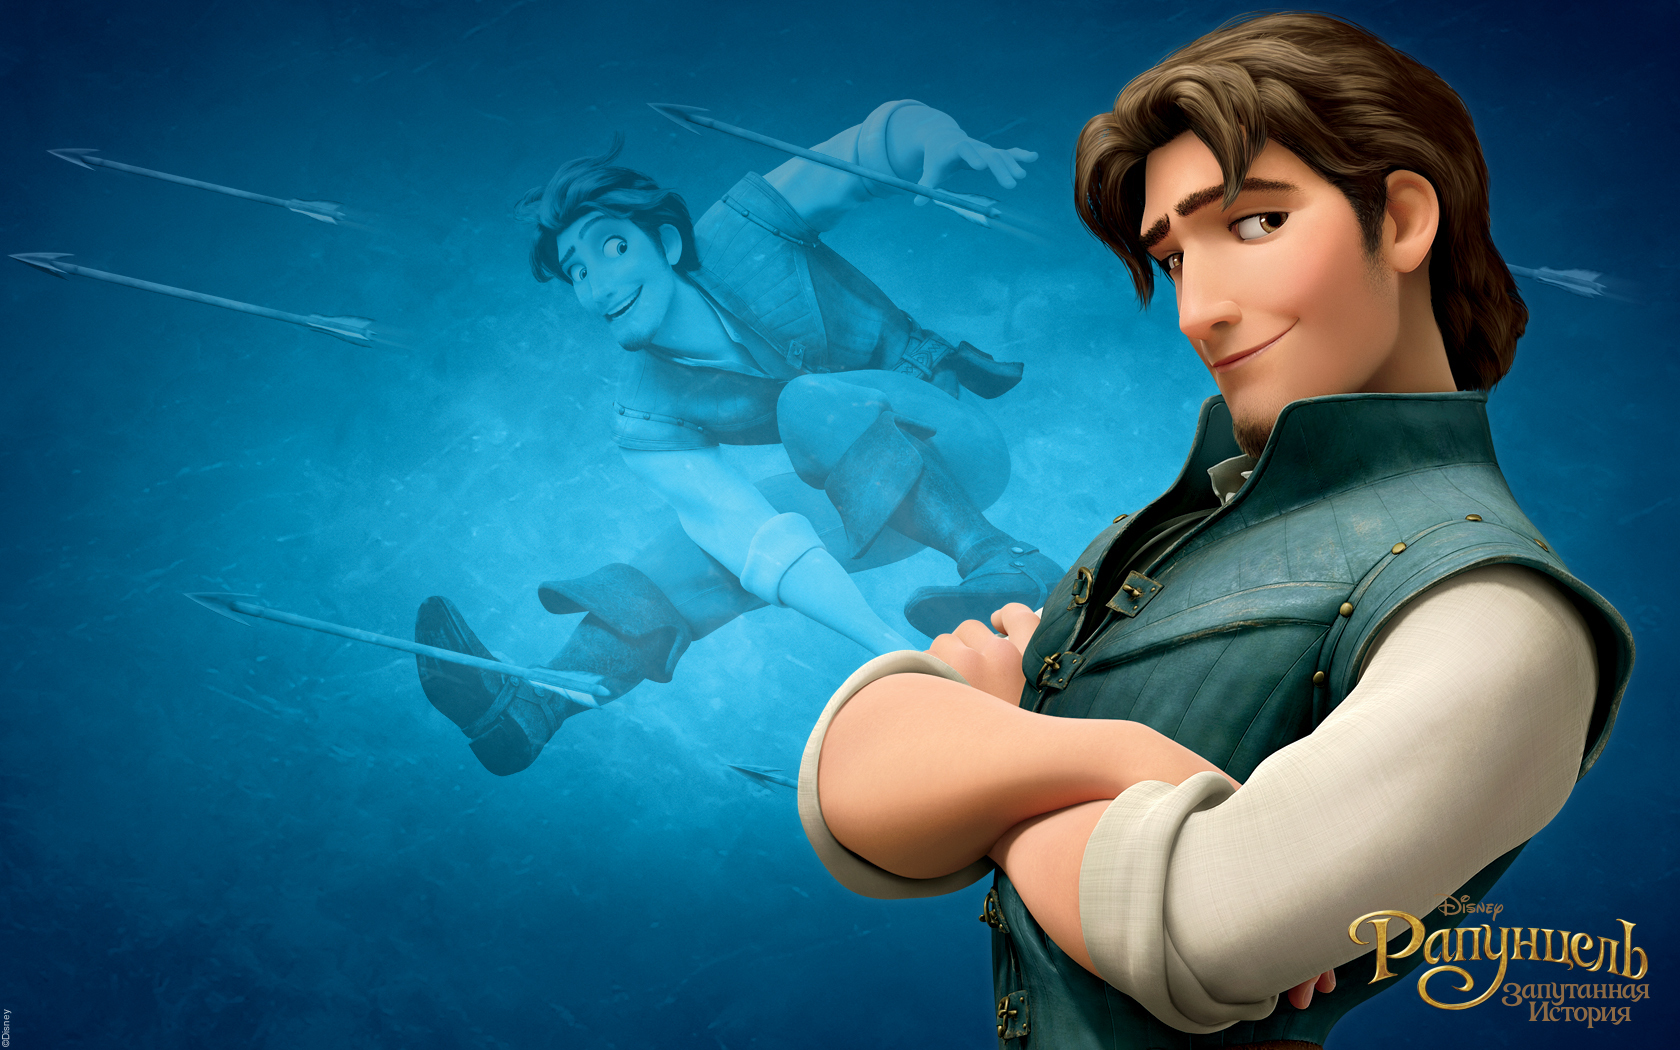 Tangled Offical Wallpapers Tangled Wallpaper 17286316